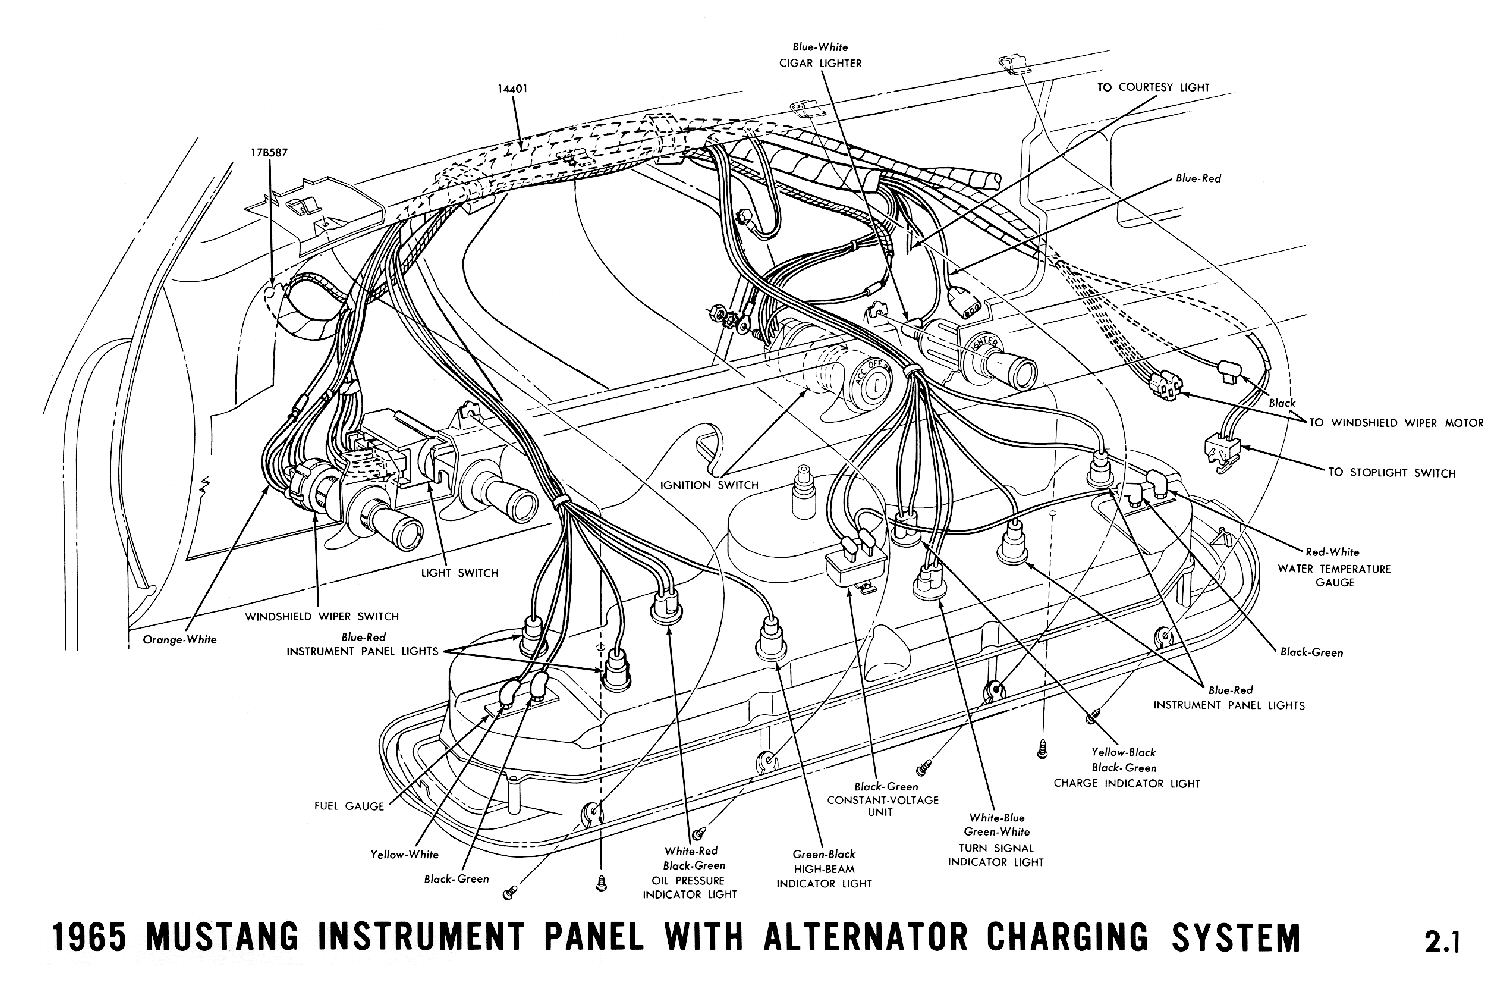 1965a 1965 mustang wiring diagrams average joe restoration 1989 mustang wiring harness at soozxer.org